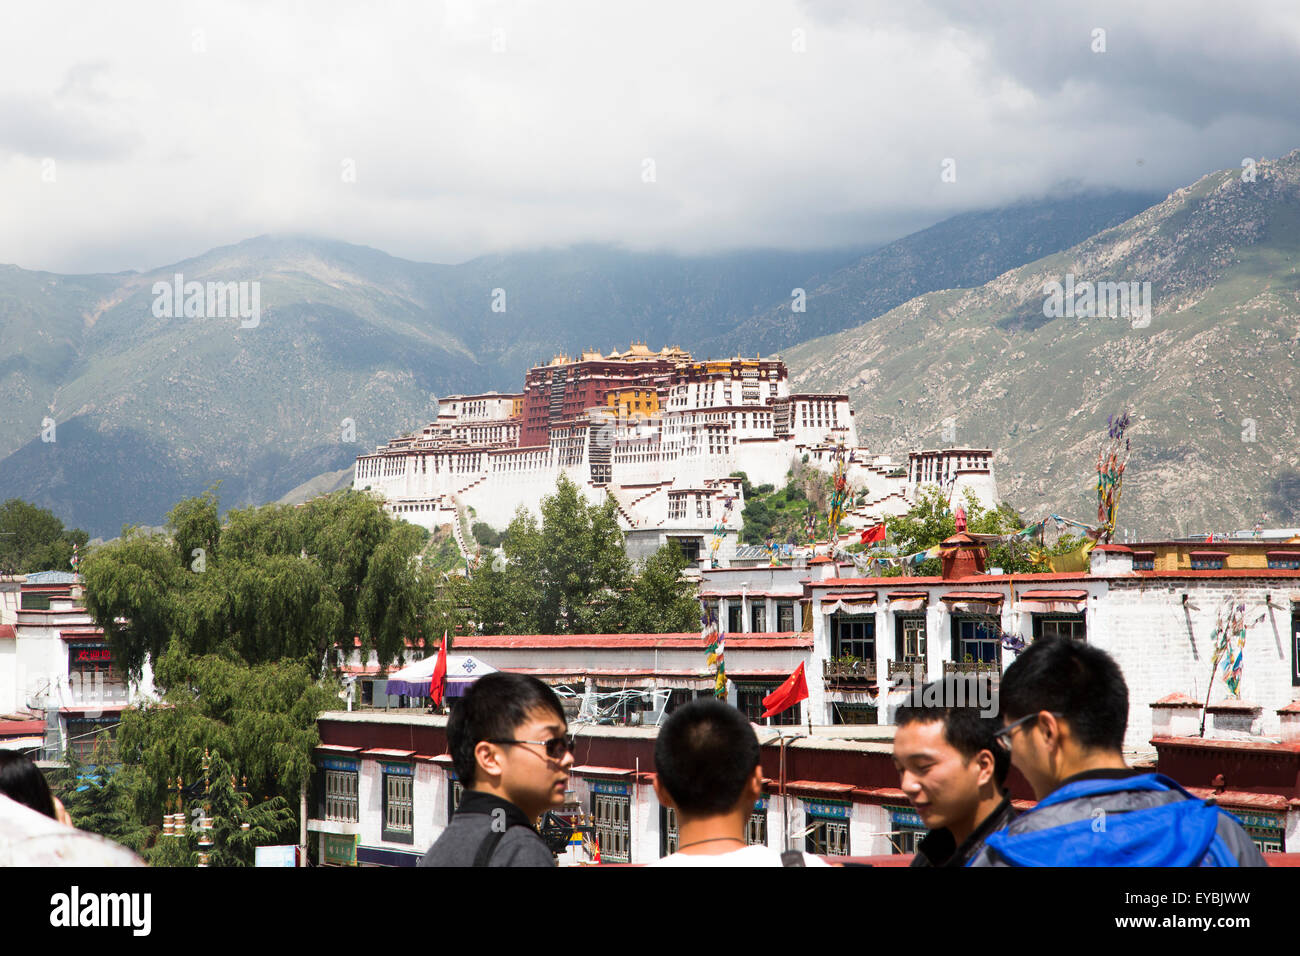 A view of the Potala palace in Lhasa - Stock Image